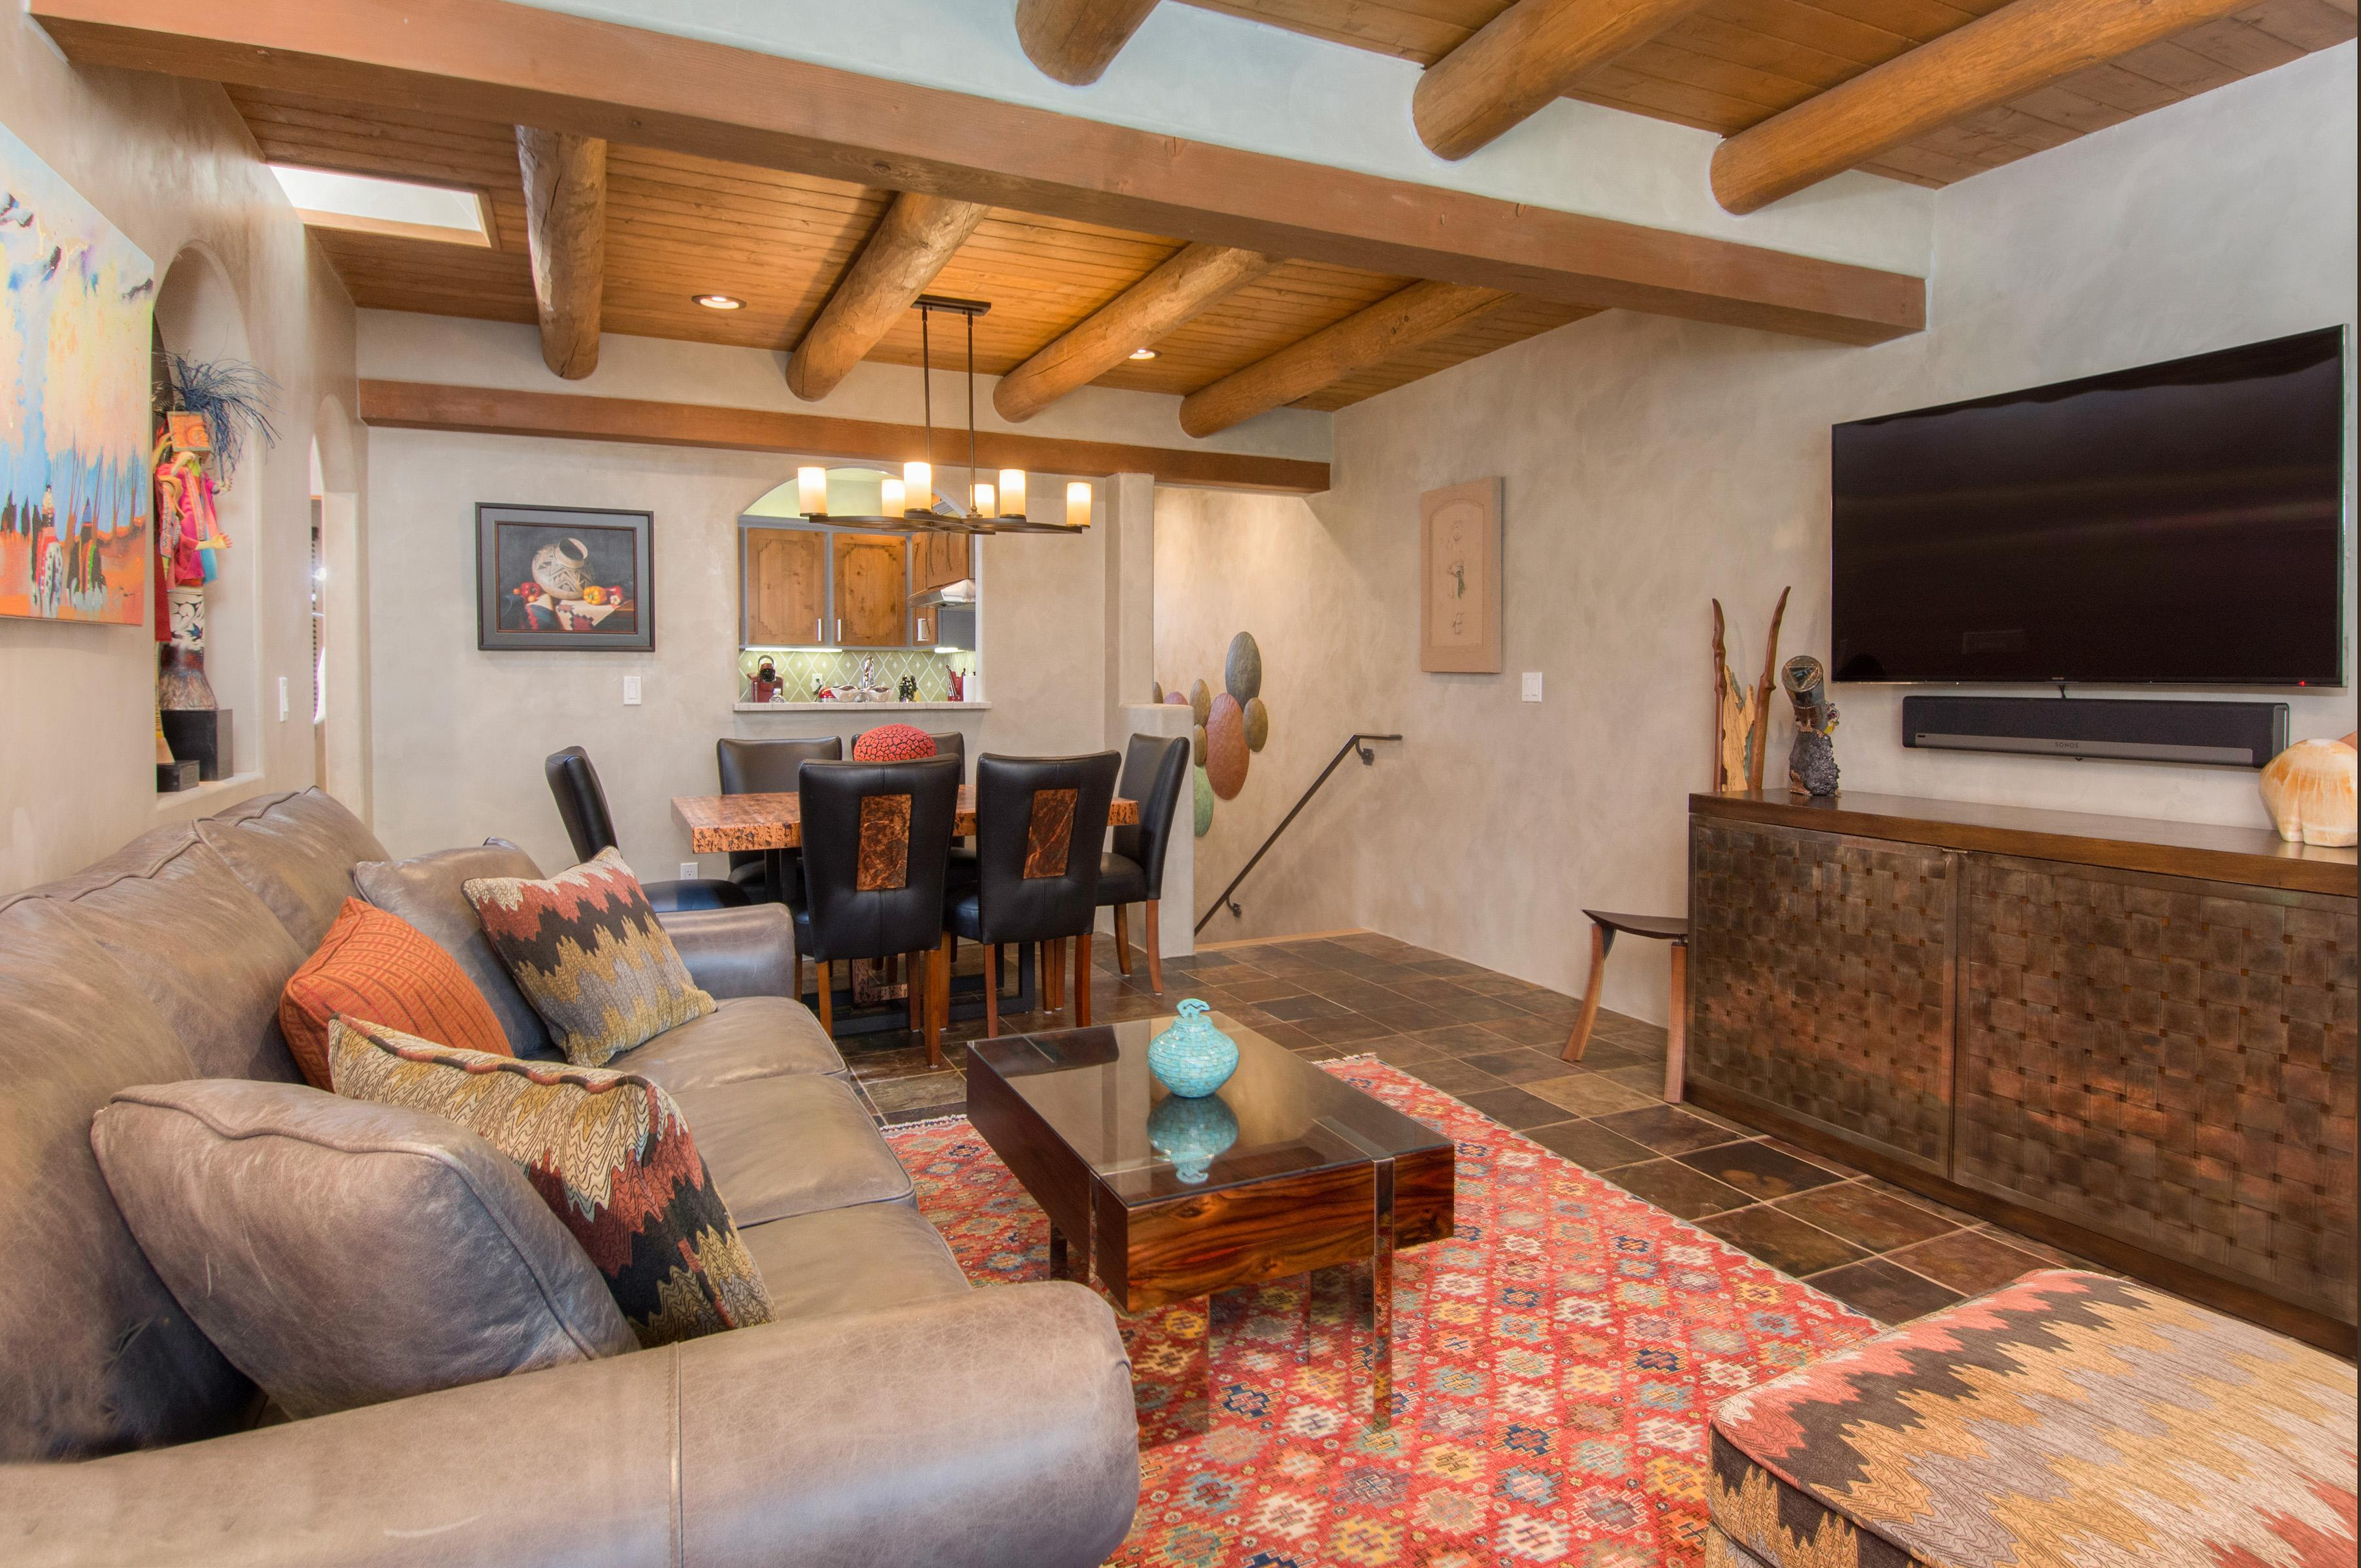 Pueblo-style interior detail including vigas ceilings and a kiva fireplace pair beautifully with southwestern decor.